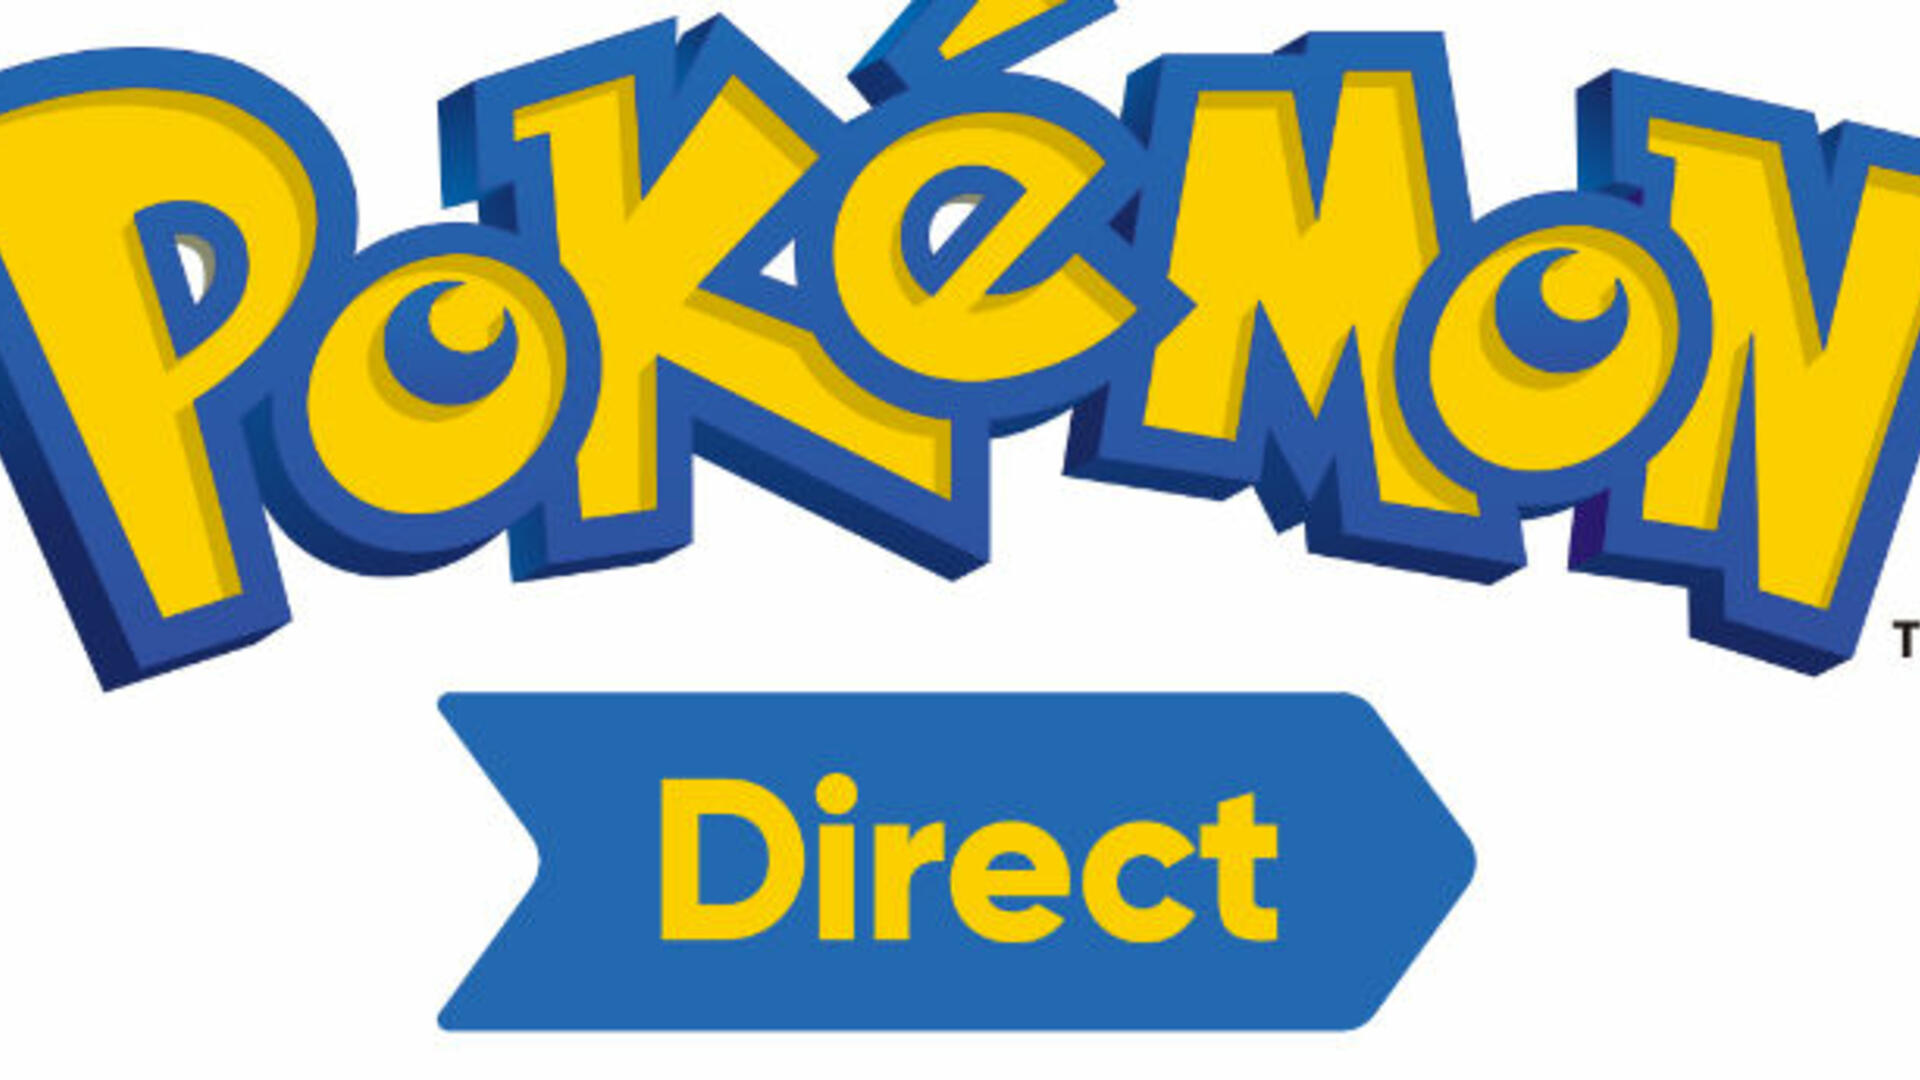 Nintendo Pokémon Direct: Preview, and How to Watch the Presentation